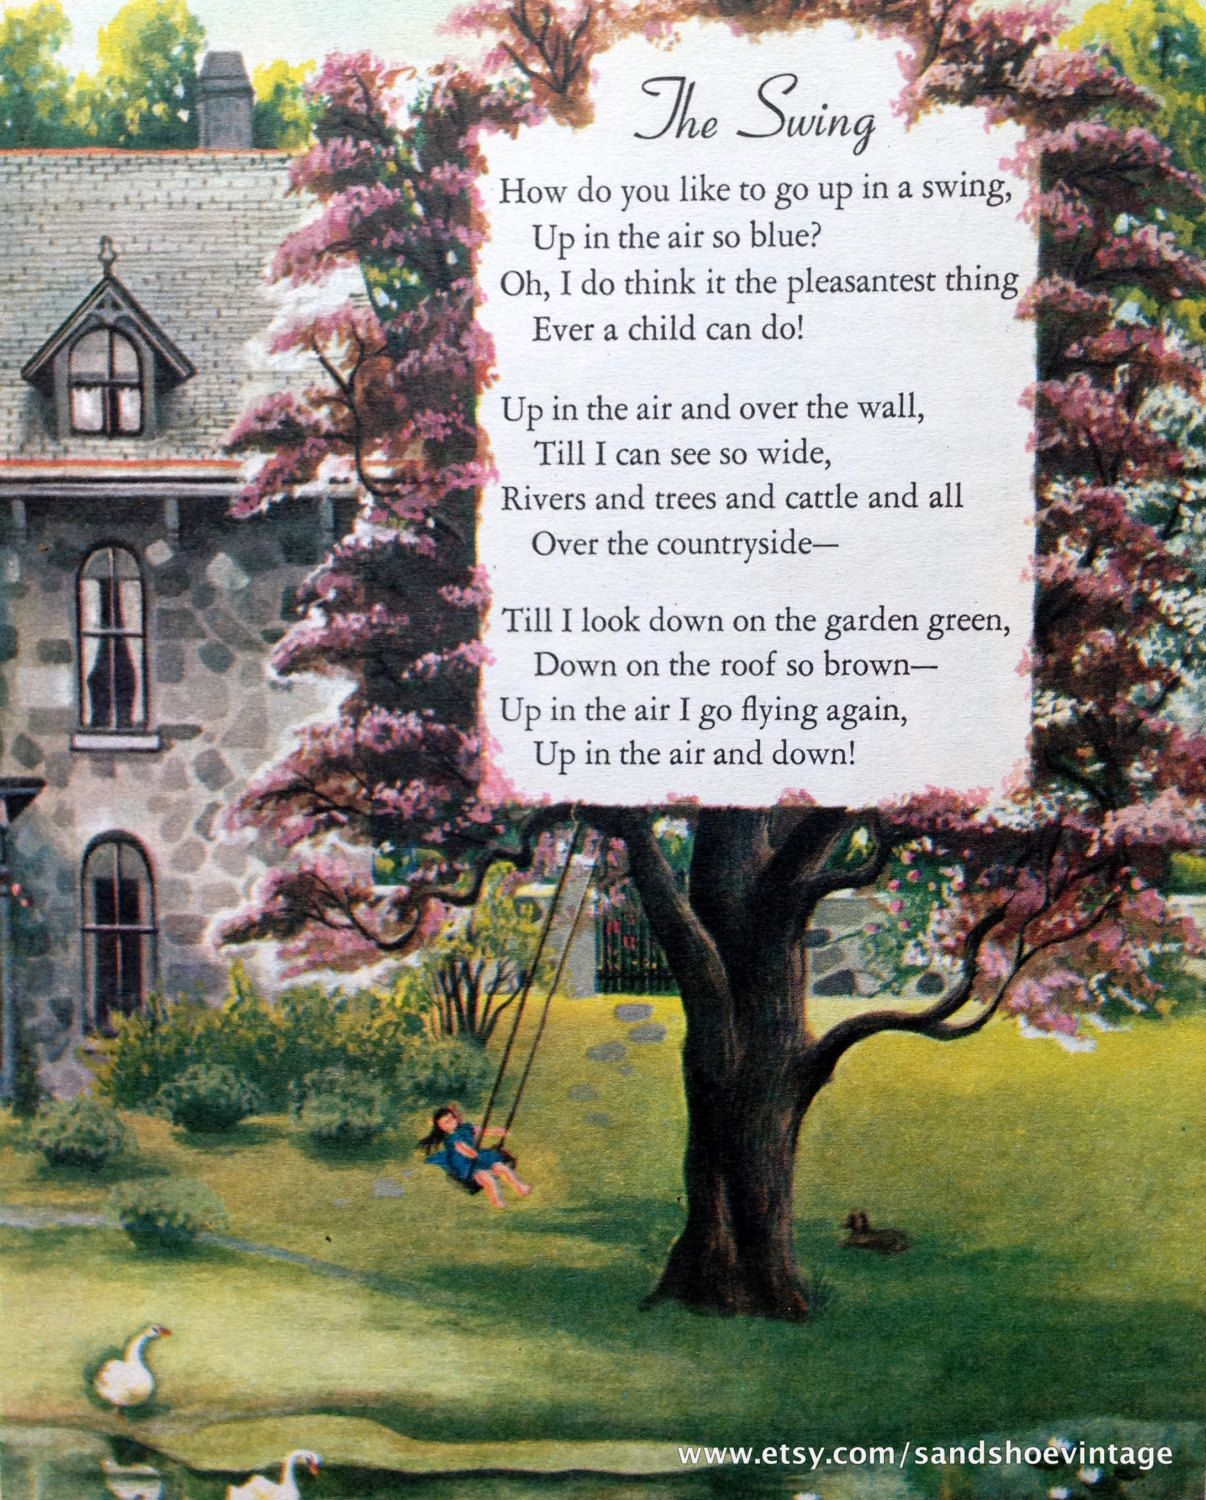 S the swing poem print ideal for framing